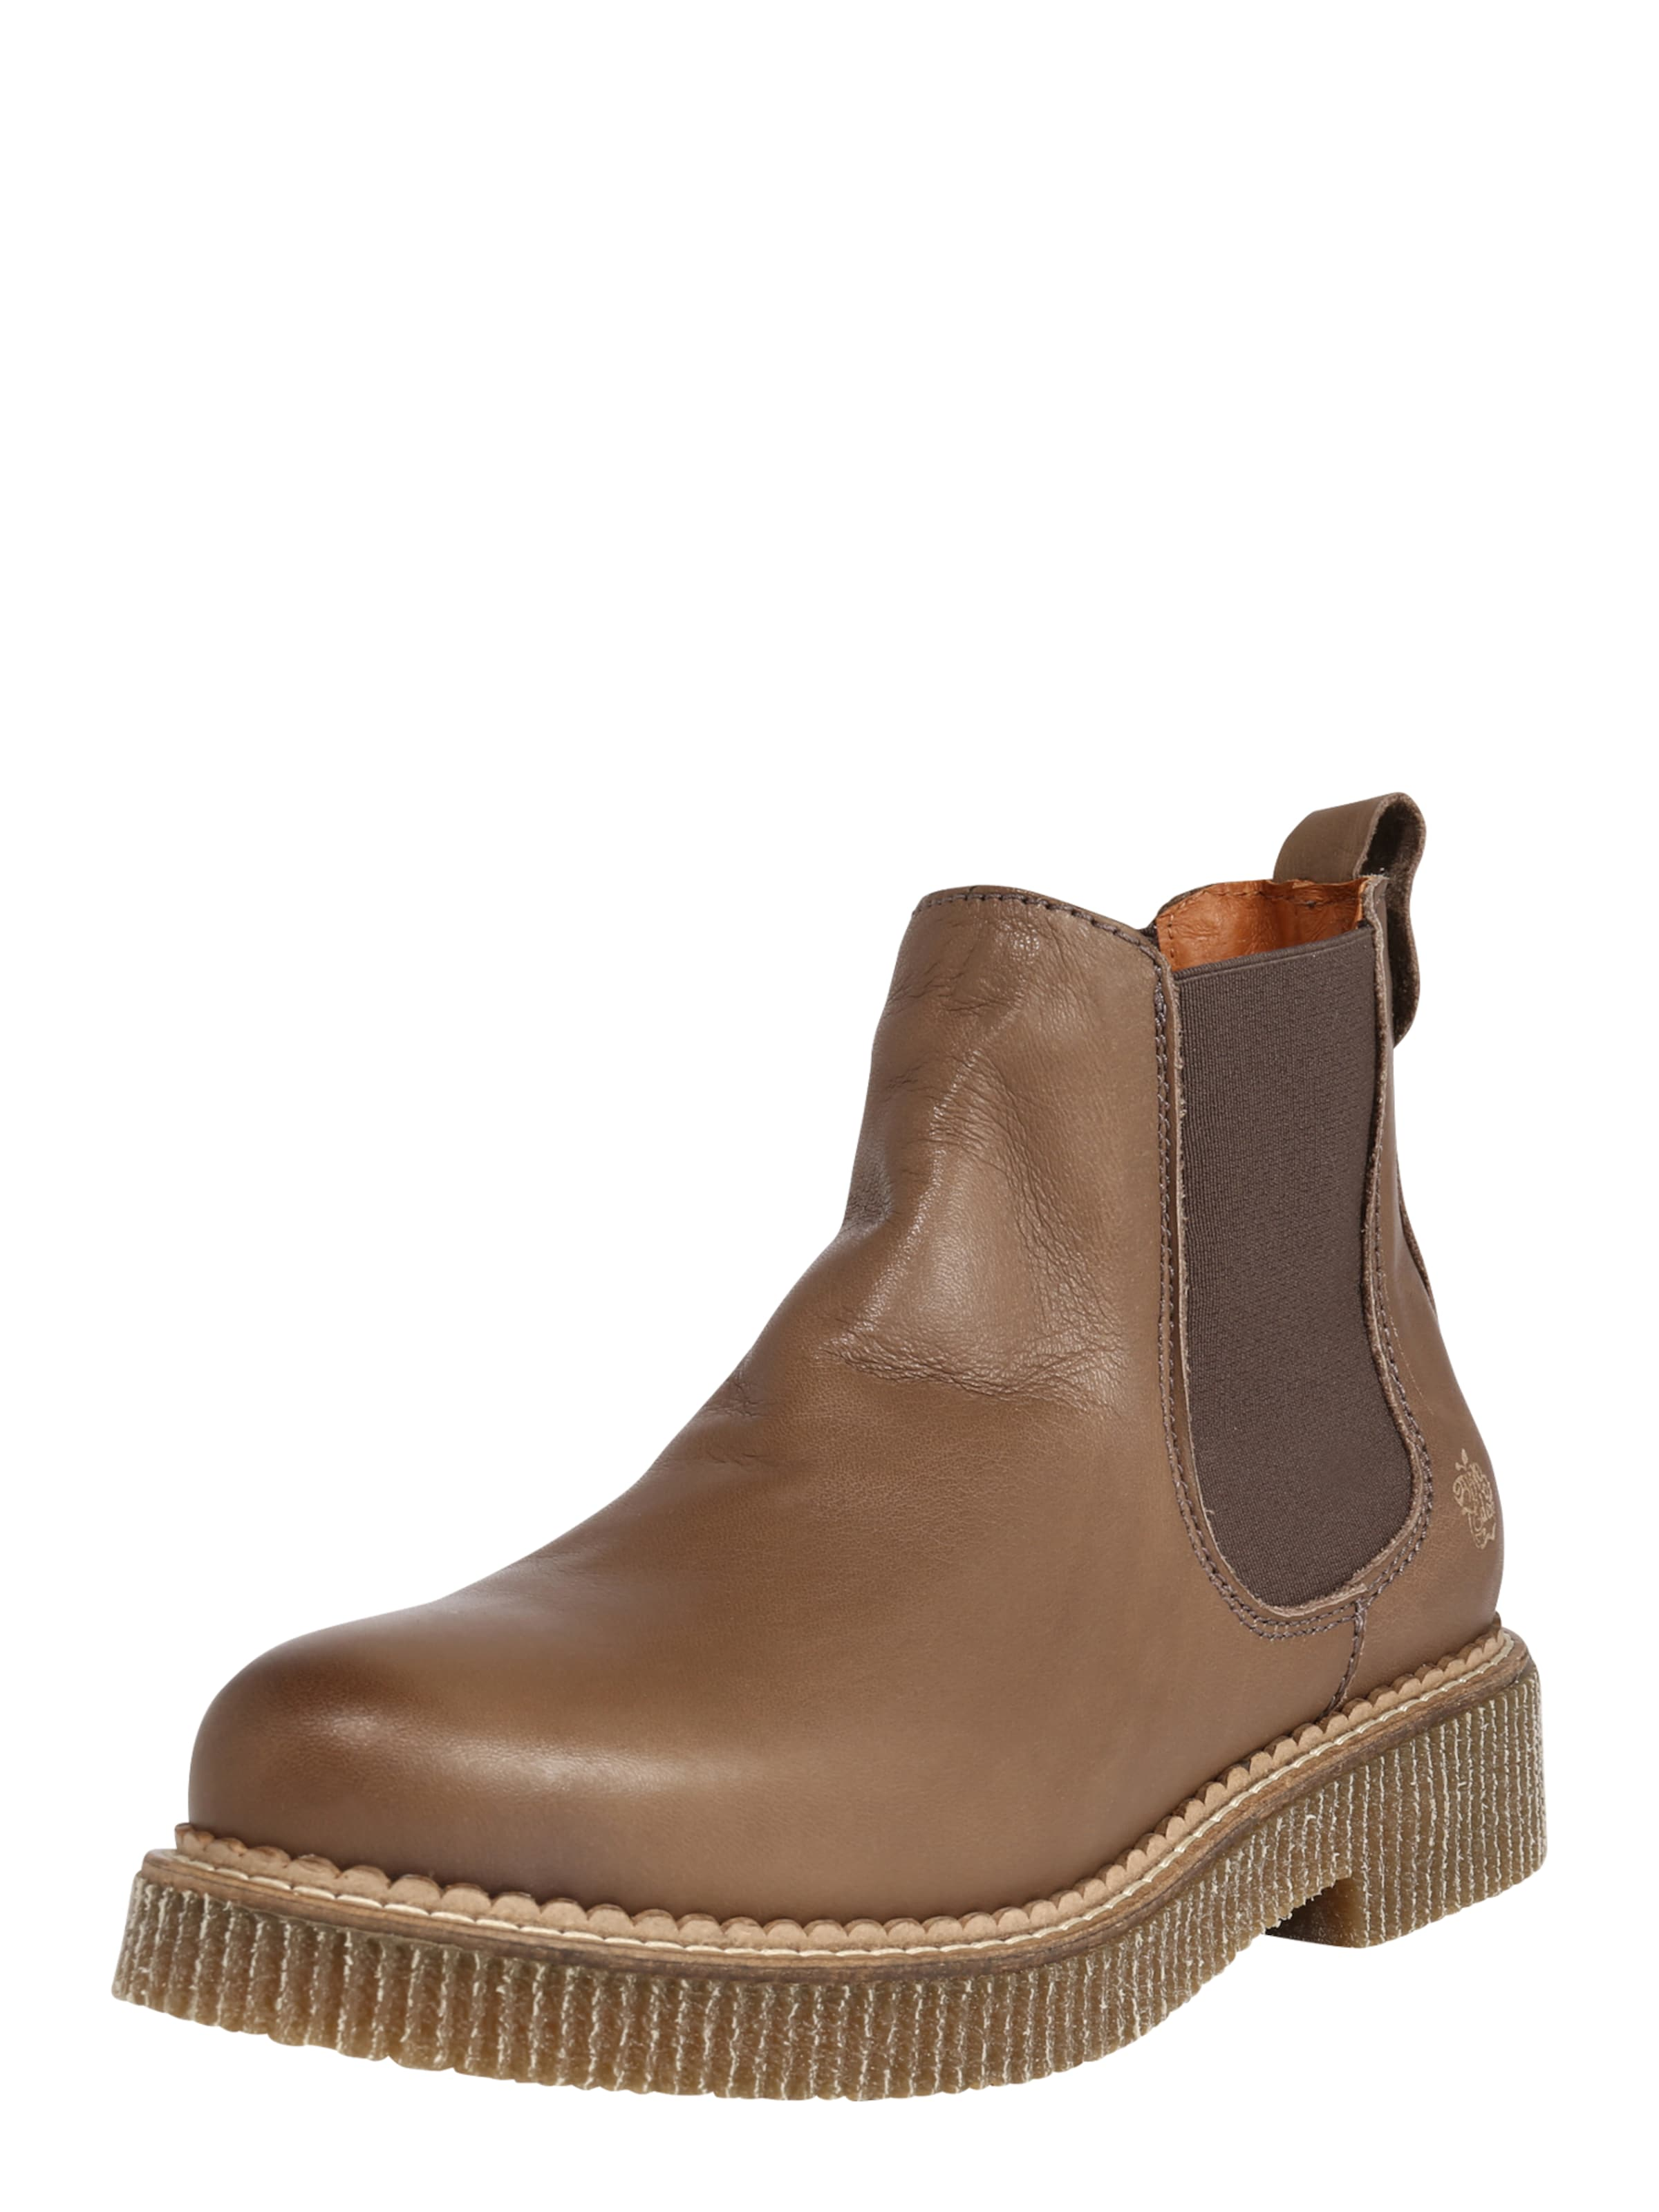 Apple of Eden Chelsea boots 'DORA' i brun